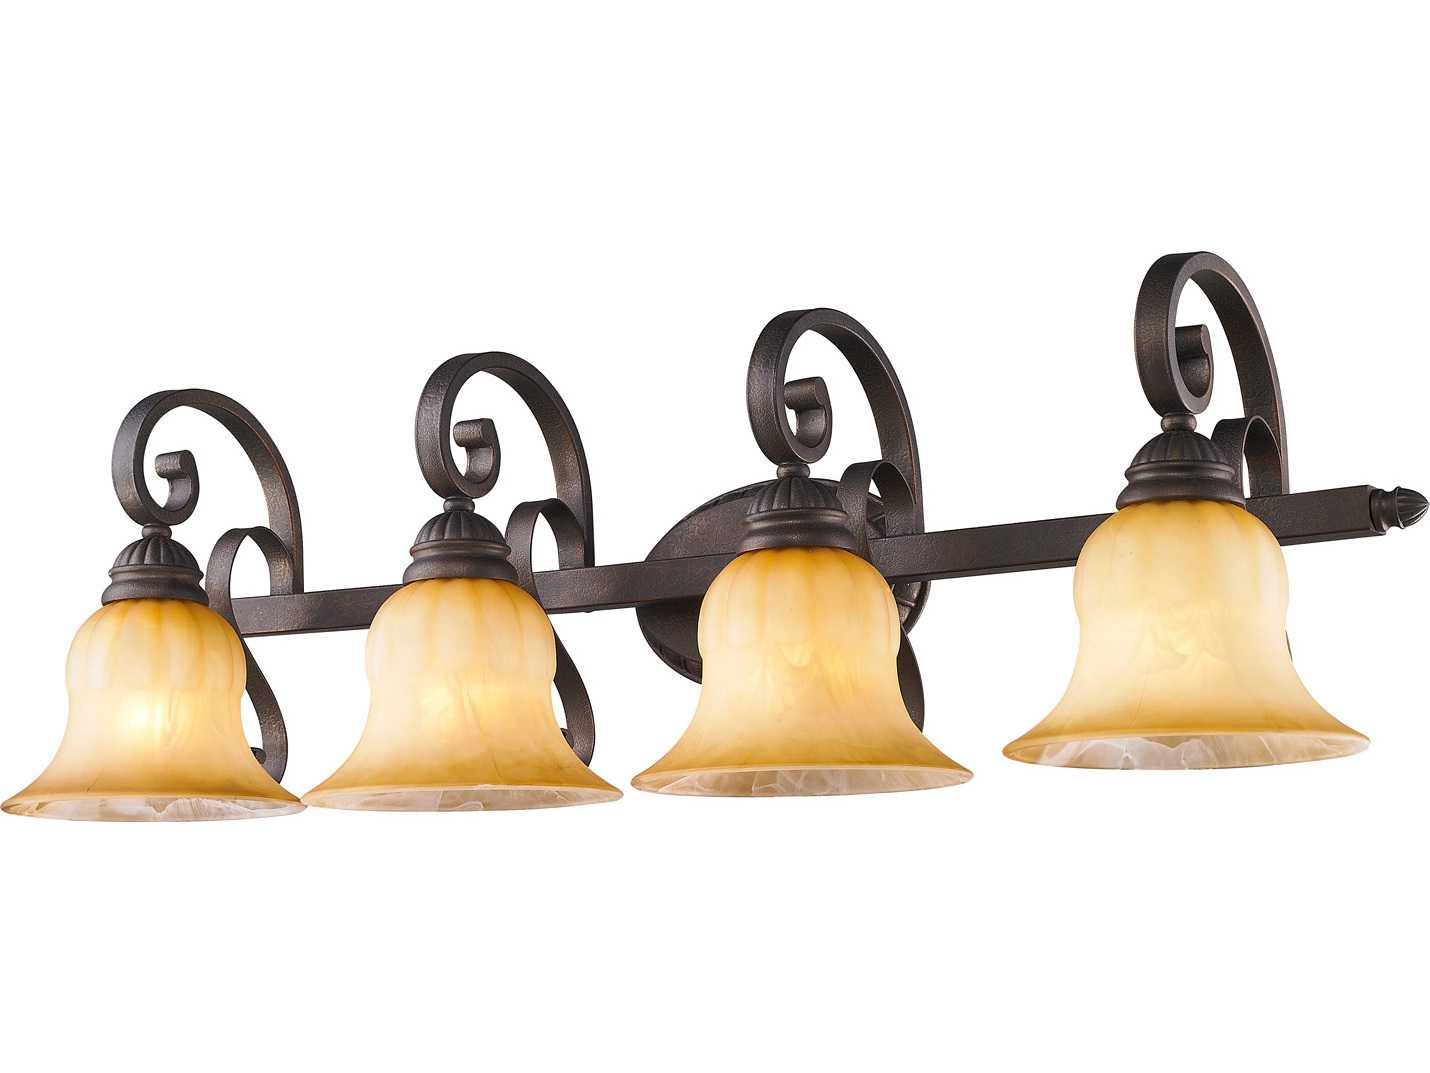 Golden Lighting Mayfair Leather Crackle Four-Light Vanity Light with Creme Brulee Glass ...